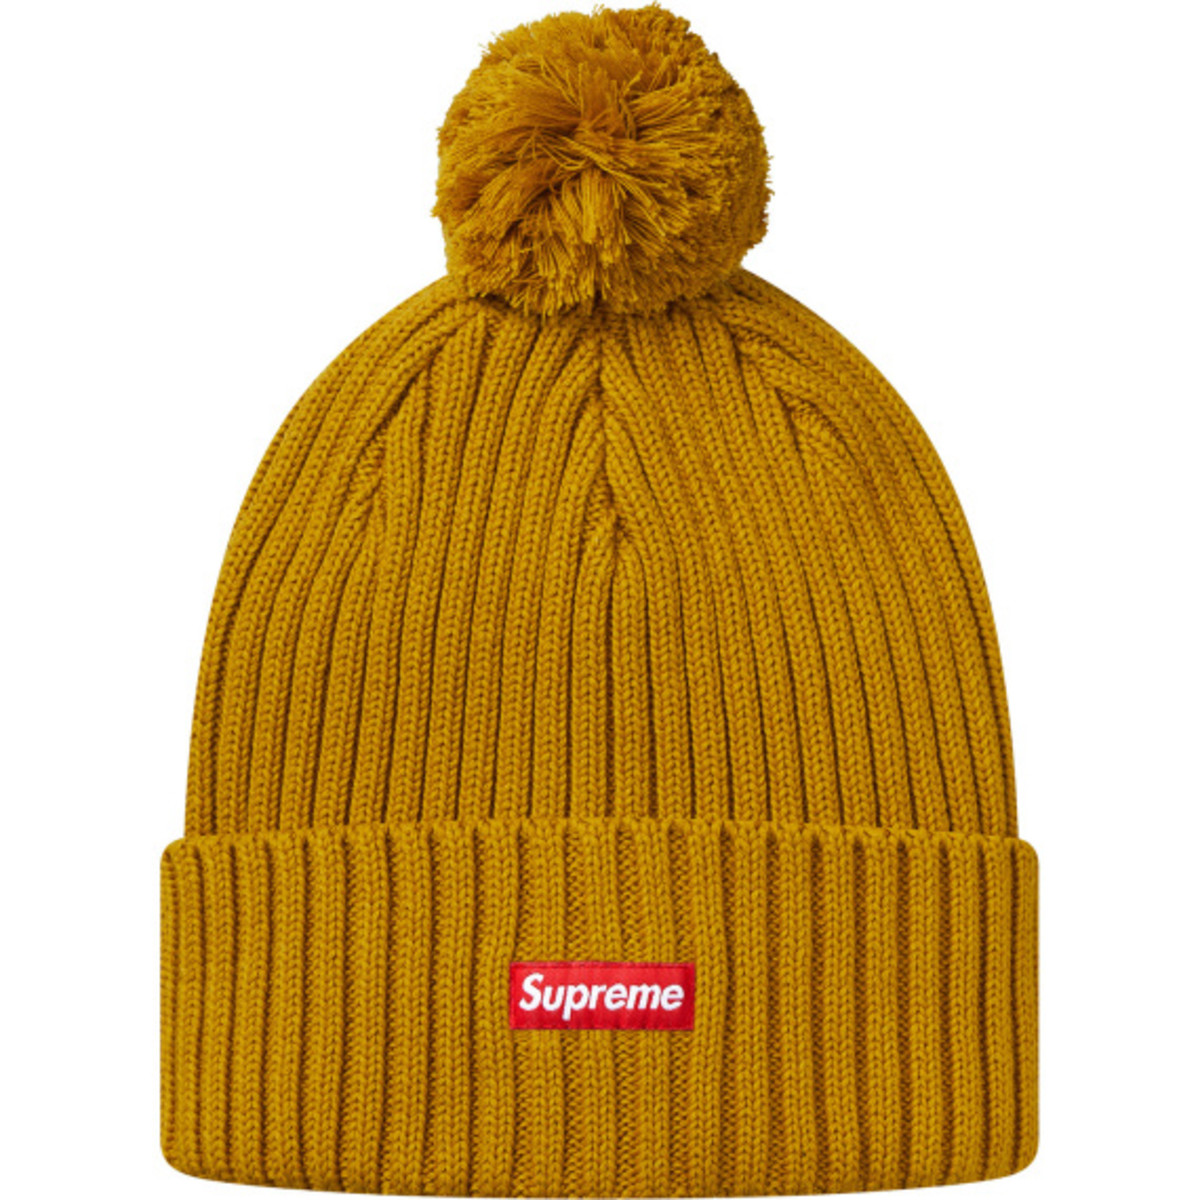 Supreme Ribbed Beanie | Available Now - 4